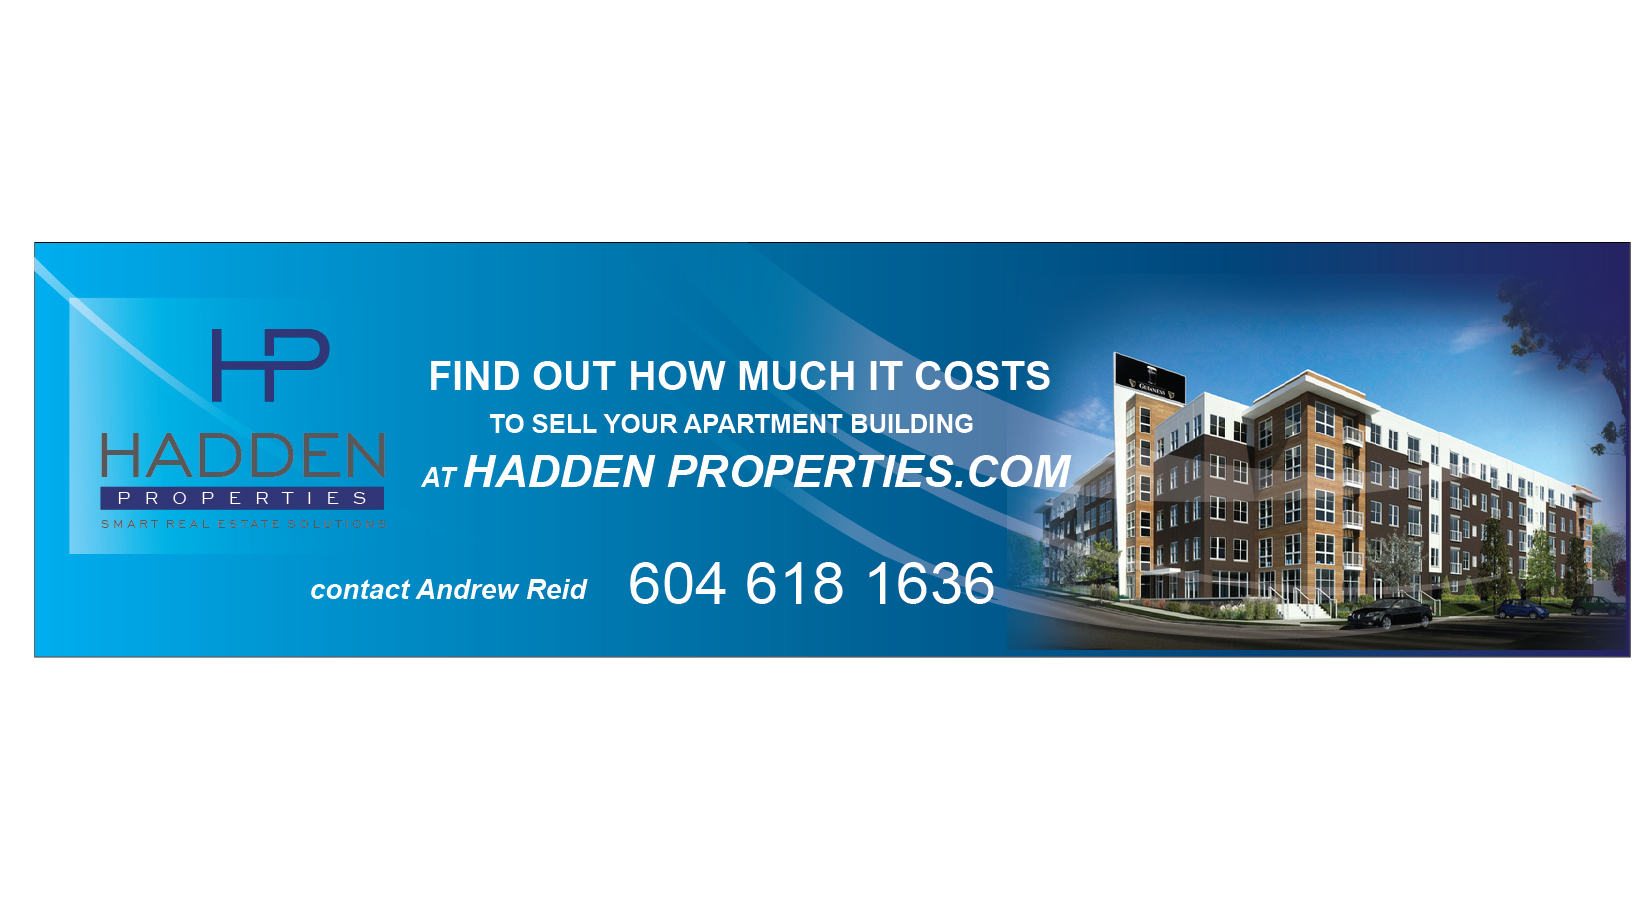 Banner Ad Design Contests Creative Banner Ad Design For Hadden Properties Ltd Design No 35 By Royalsm Hiretheworld